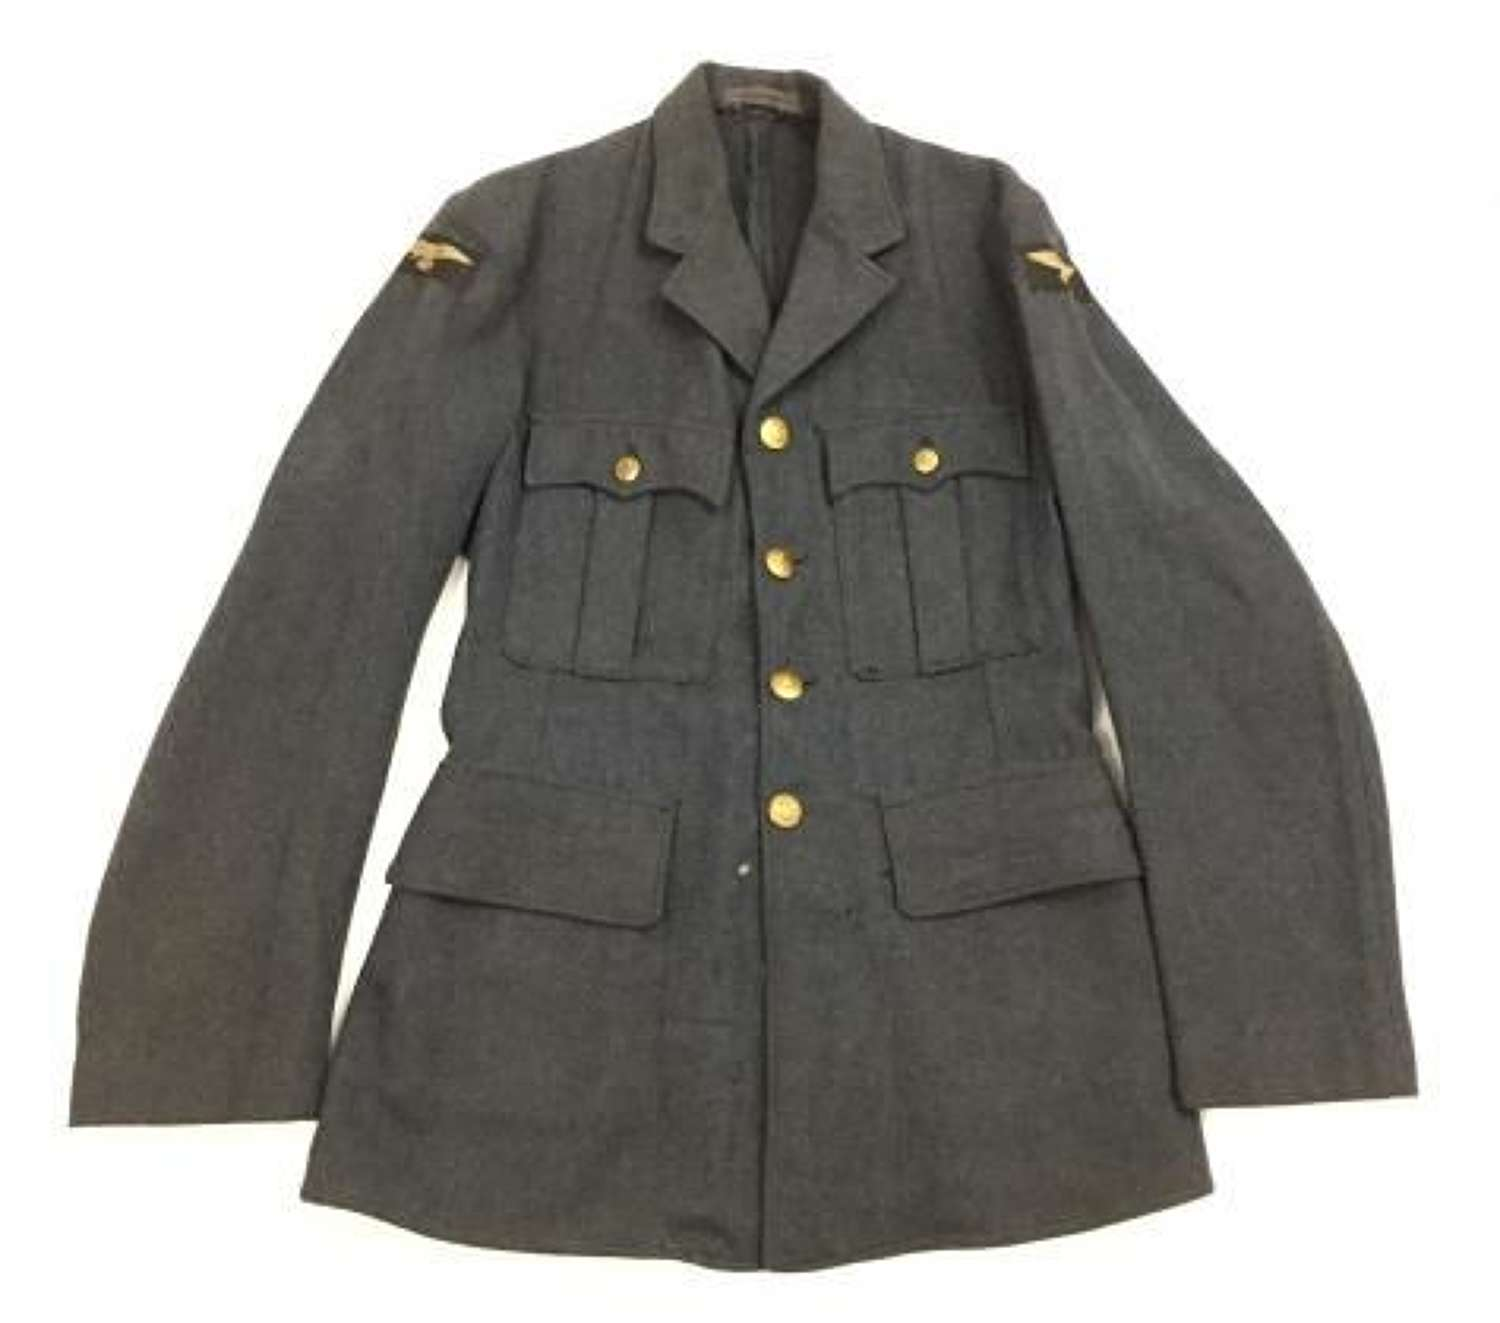 Original 1945 Dated RAF Ordinary Airman's Tunic - Size 14